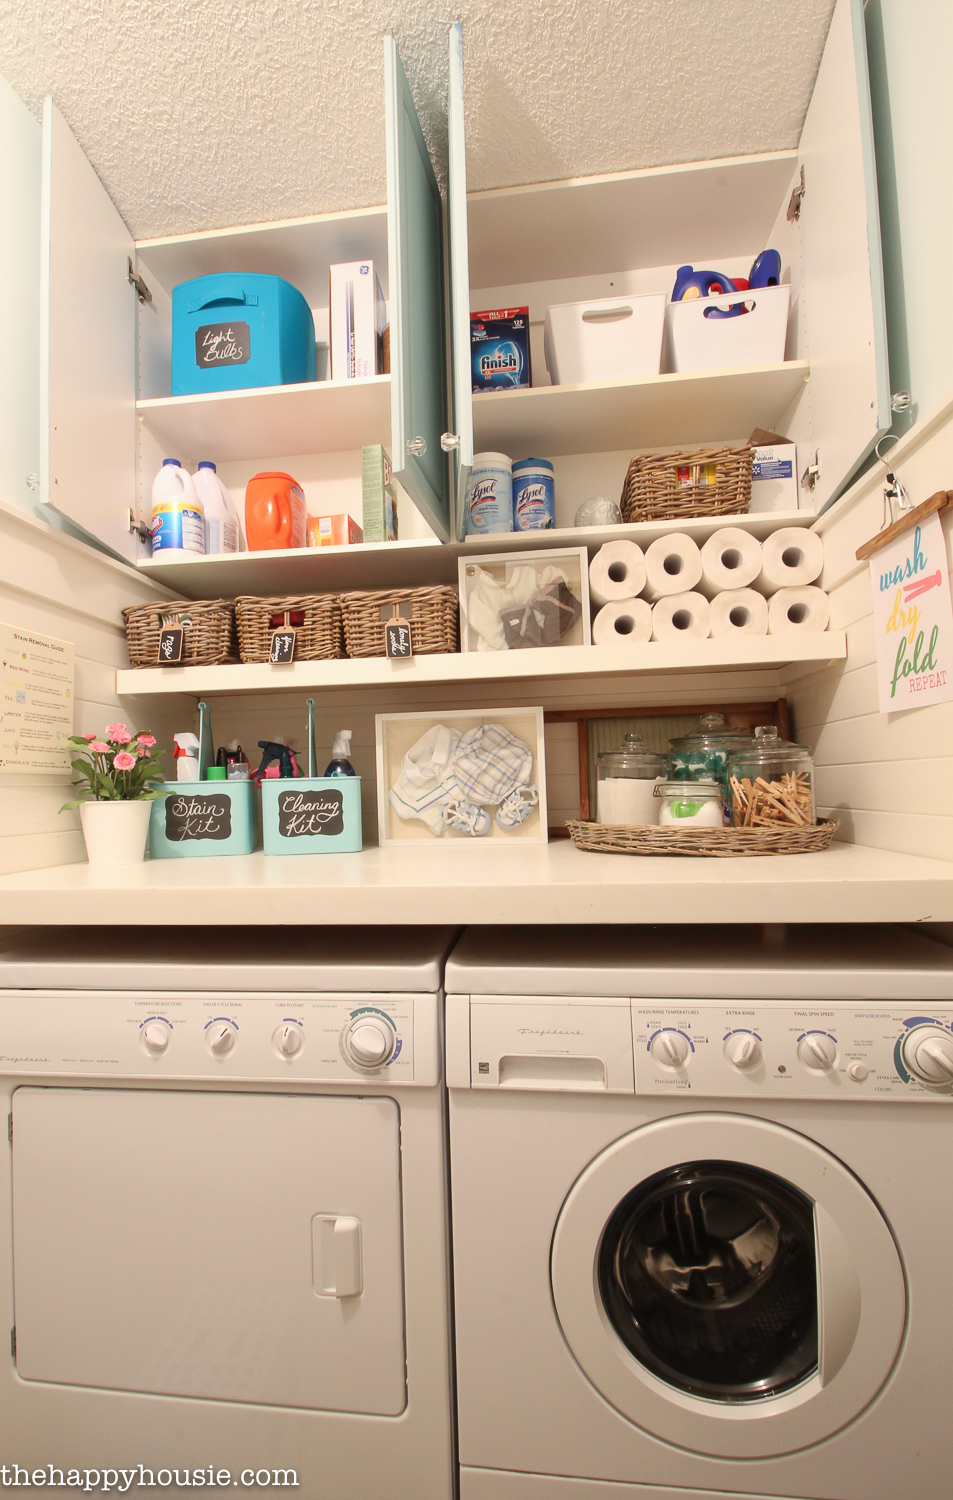 How to Completely Organize Your Laundry Room in Three Easy ... on Laundry Room Organization Ideas  id=35932